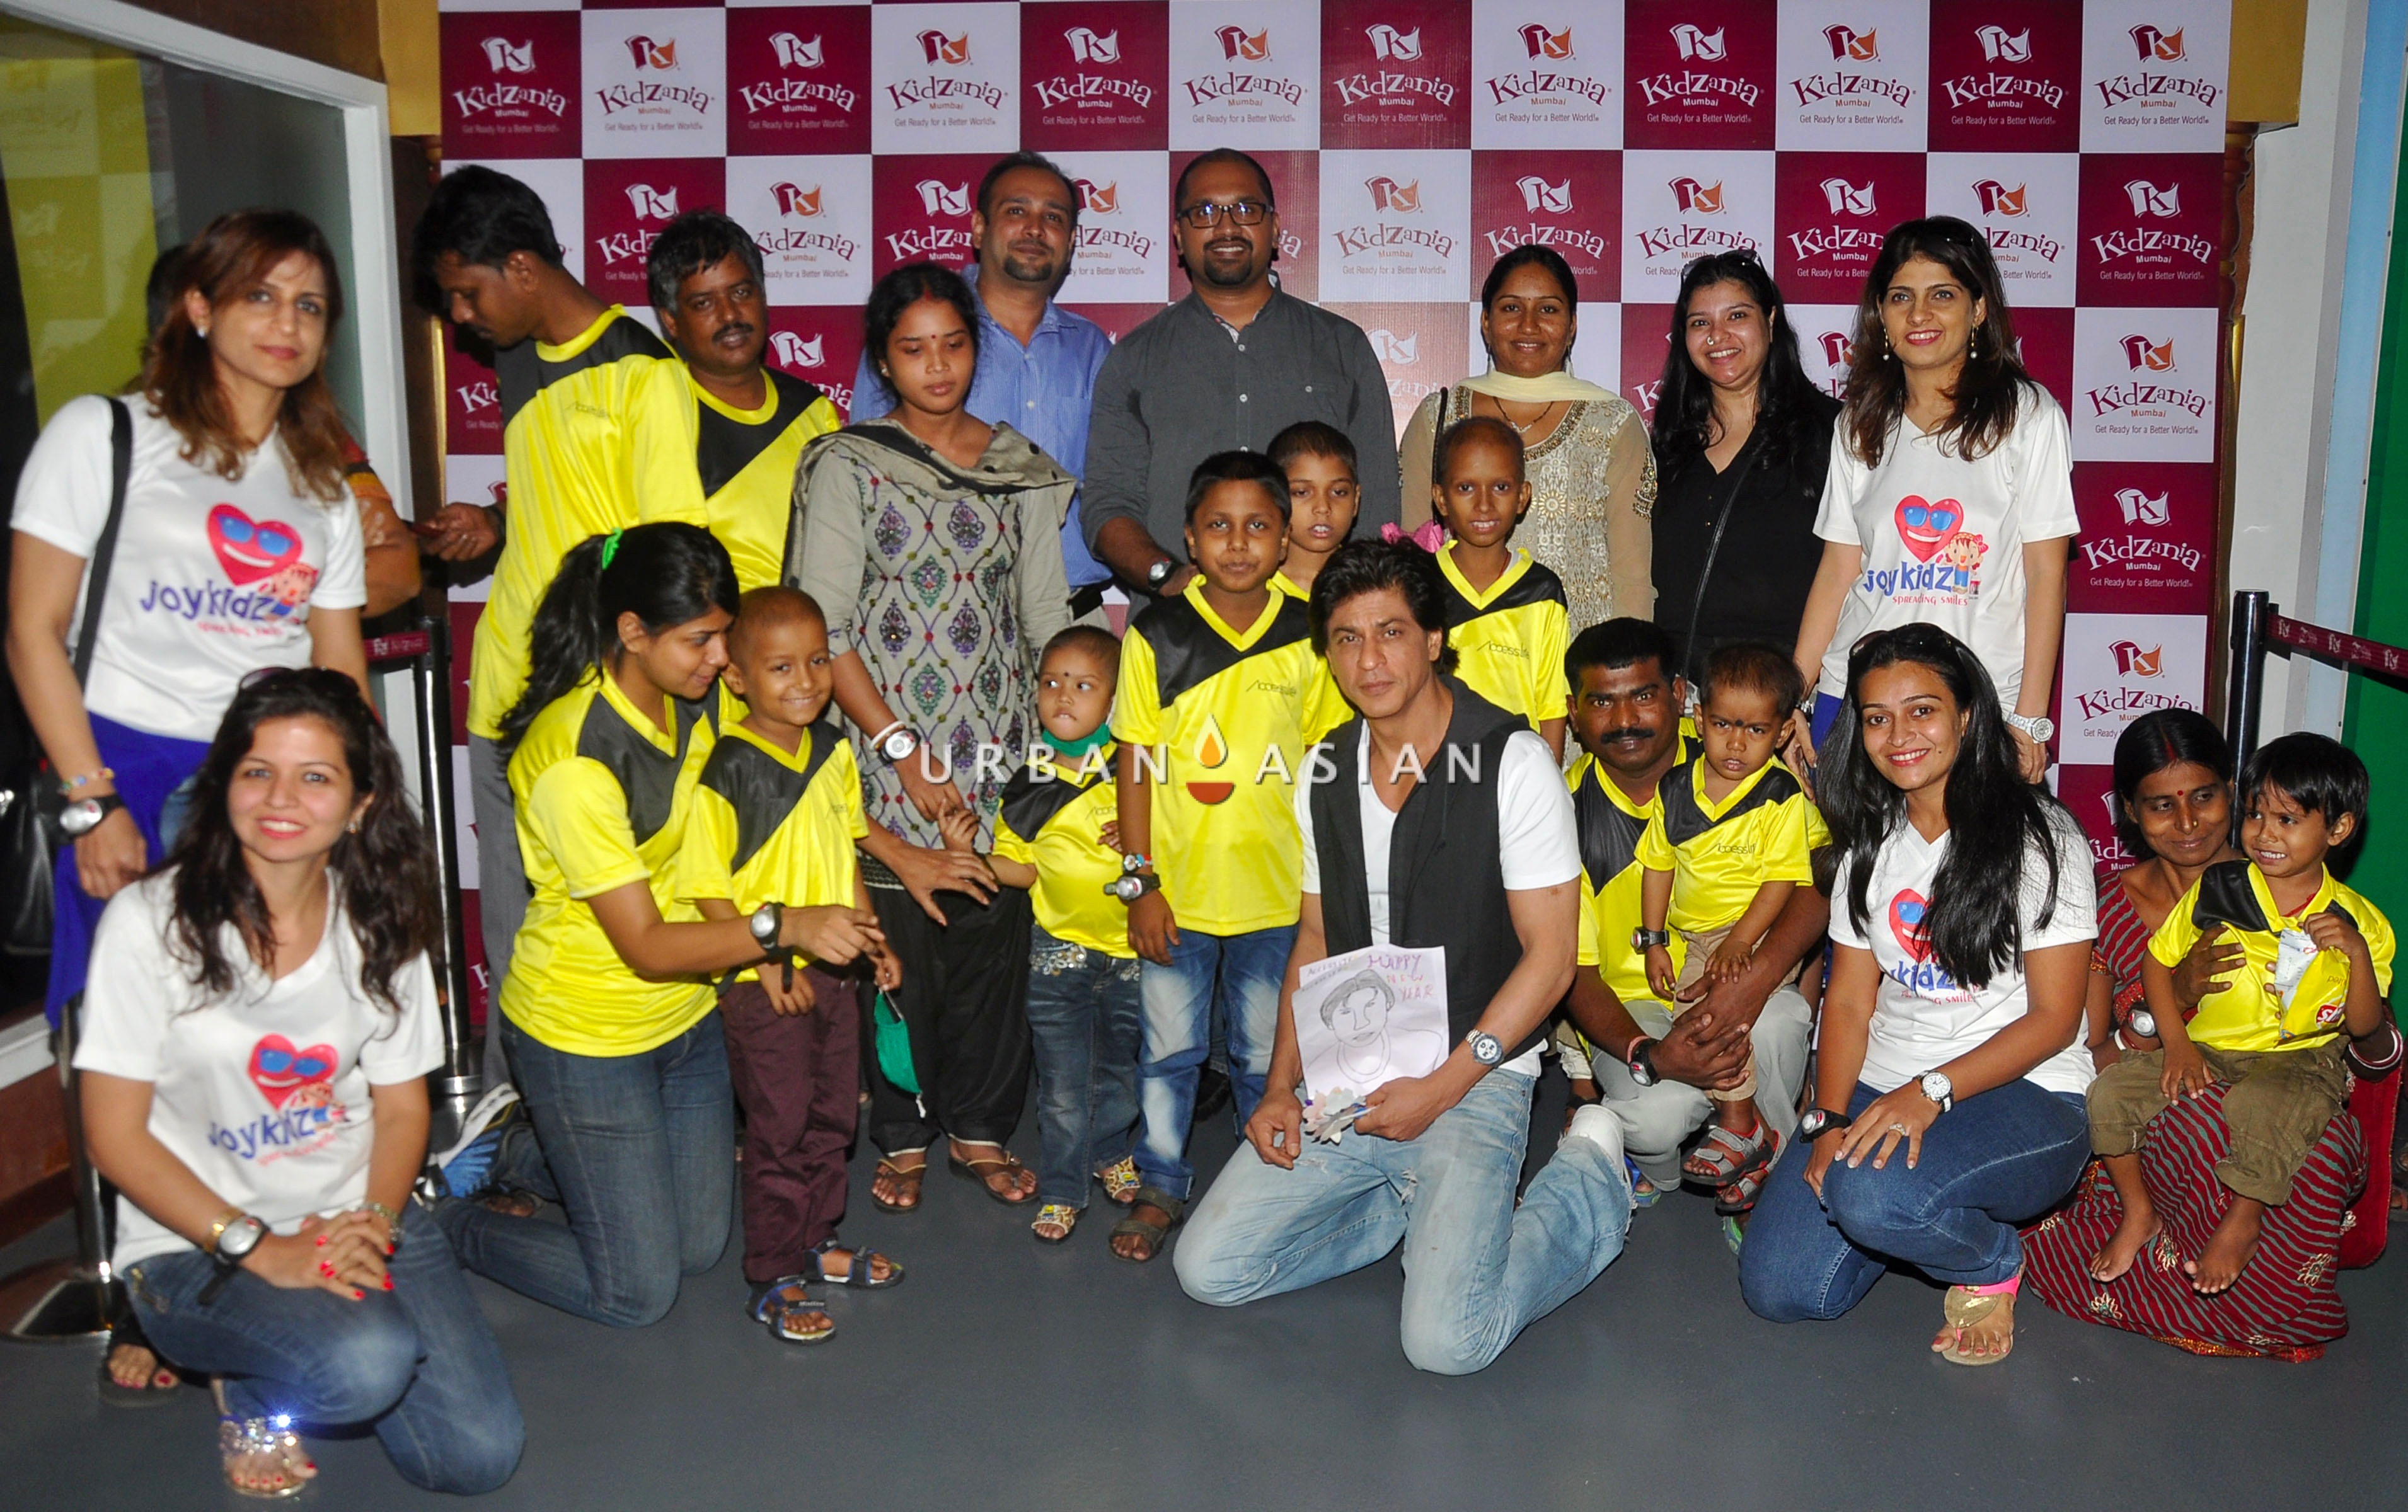 SRK WITH THE CHILDREN AND THEIR FAMILIES OF ACCESS LIFE NGO AT KIDZANIA DSC_6397